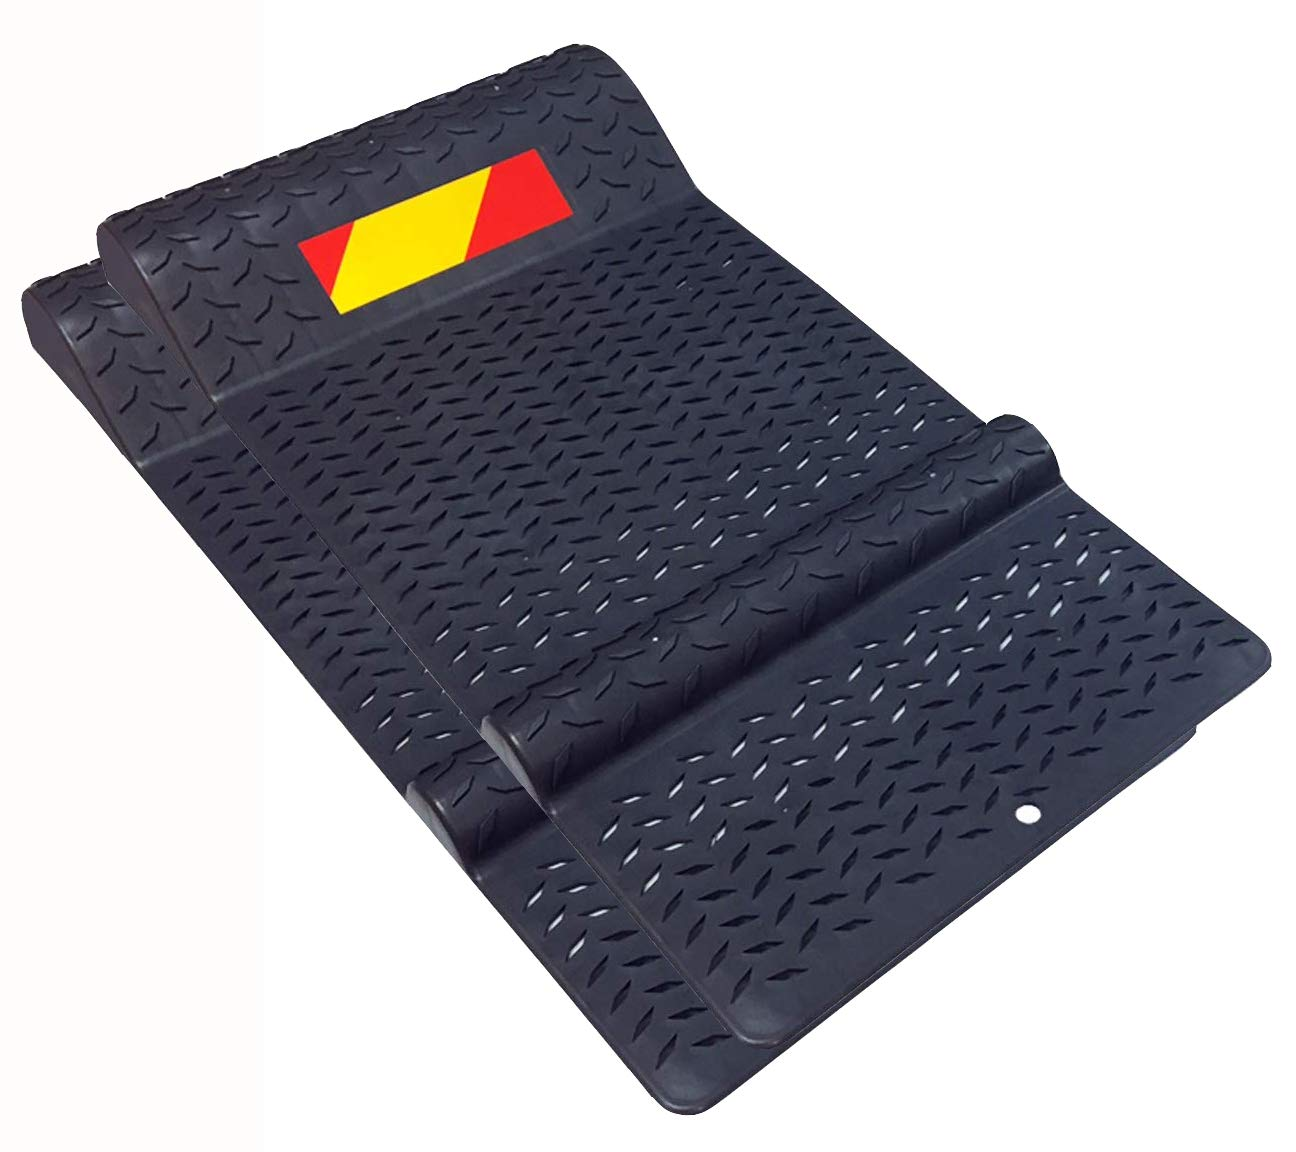 Black Antiskid Car Safety Electriduct Plastic Park Right Parking Mat Guides for Garage Vehicles